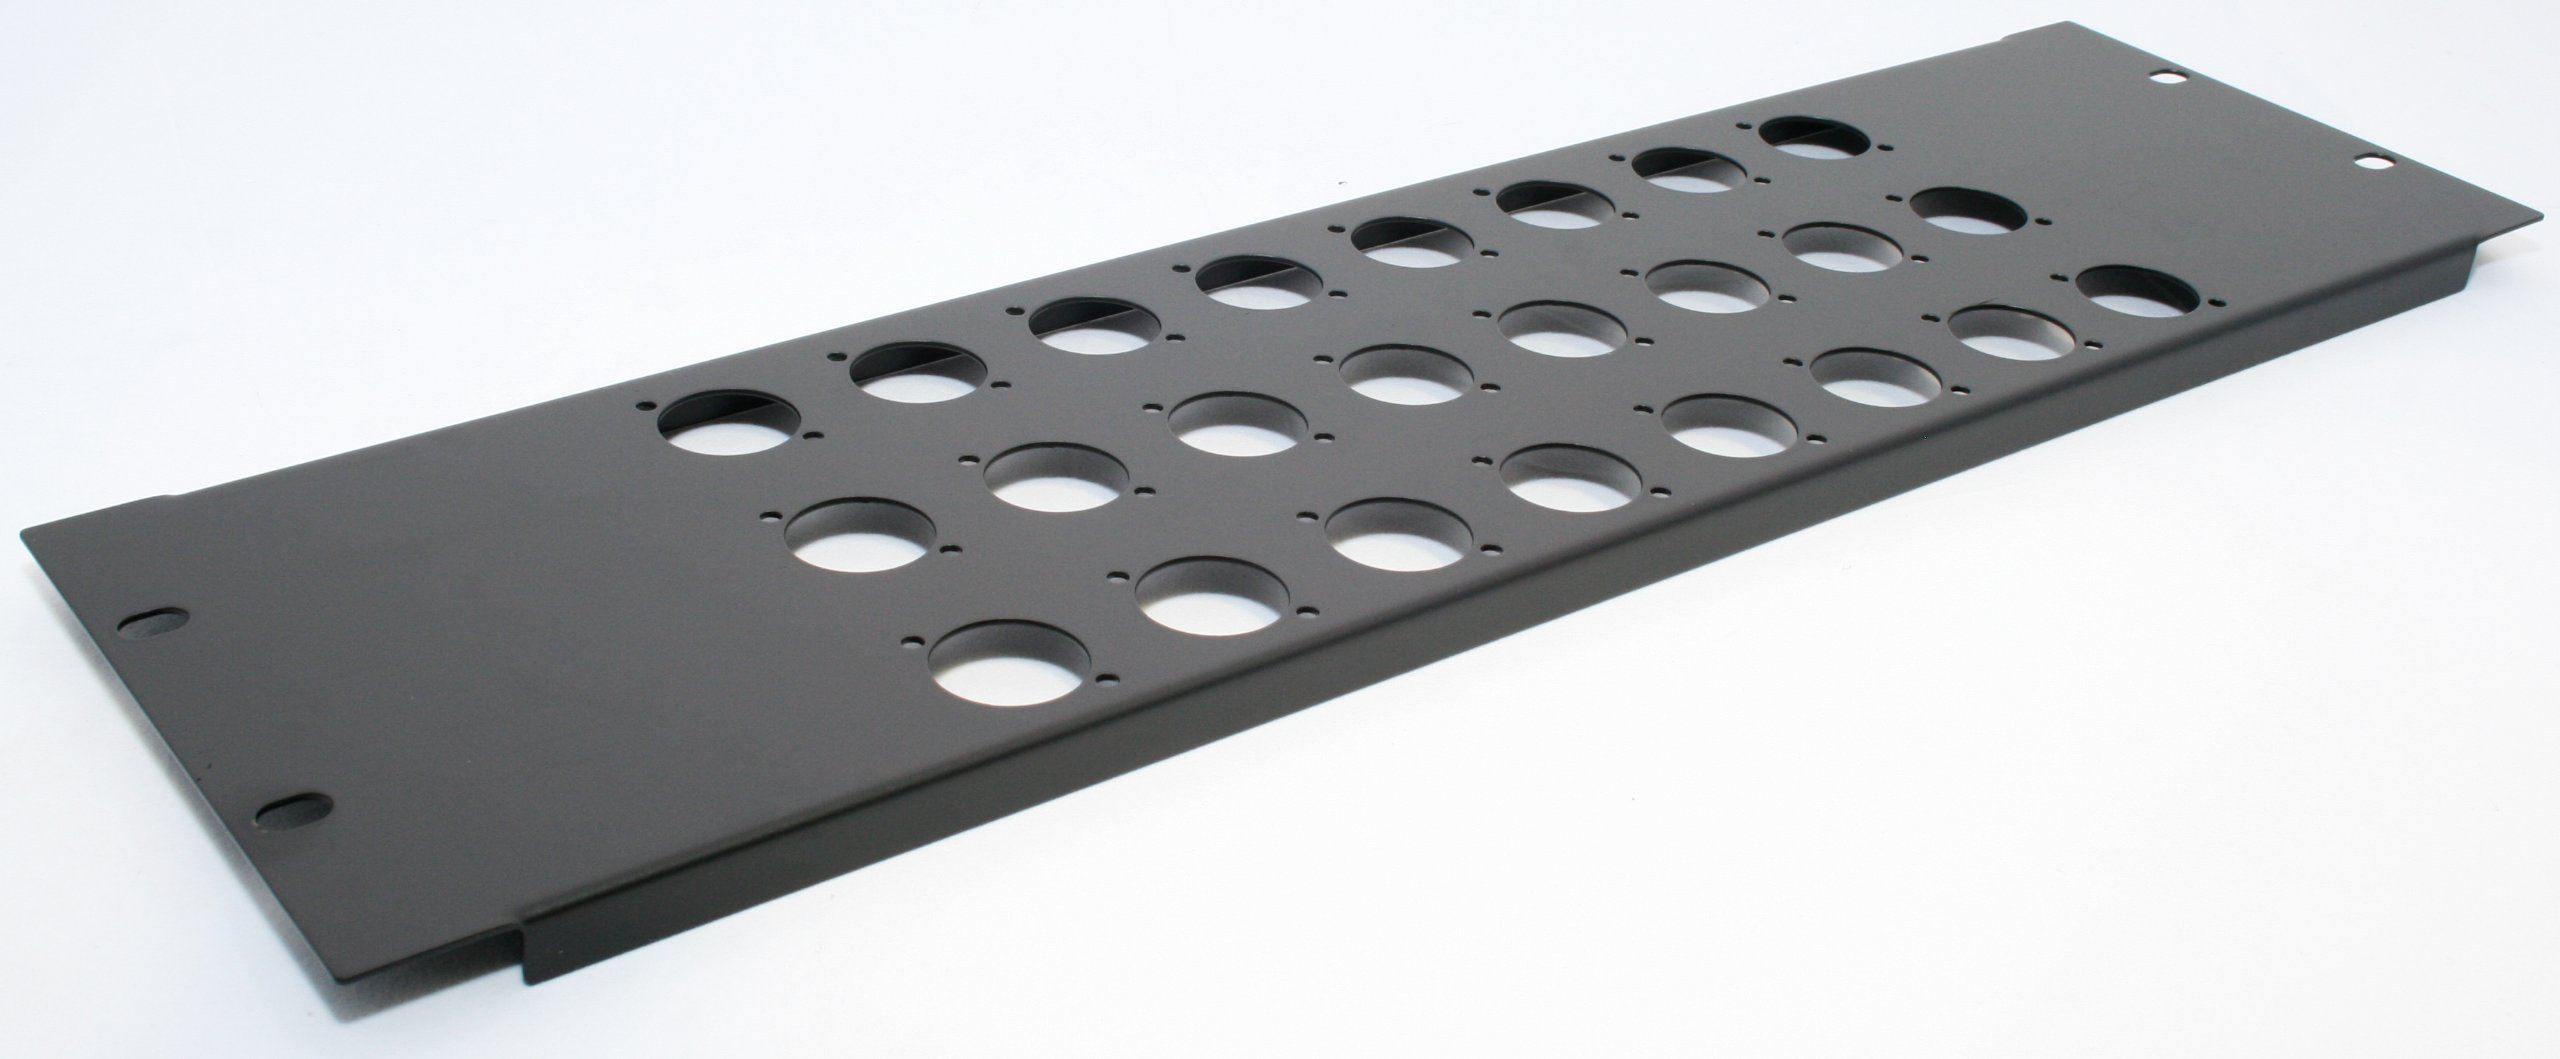 Penn Elcom R1269/3UK/24 3U NEUTRIK PUNCHED RACK PANEL W/ 24 HOLES D-SIZE XLR, SpeakON by Penn Elcom